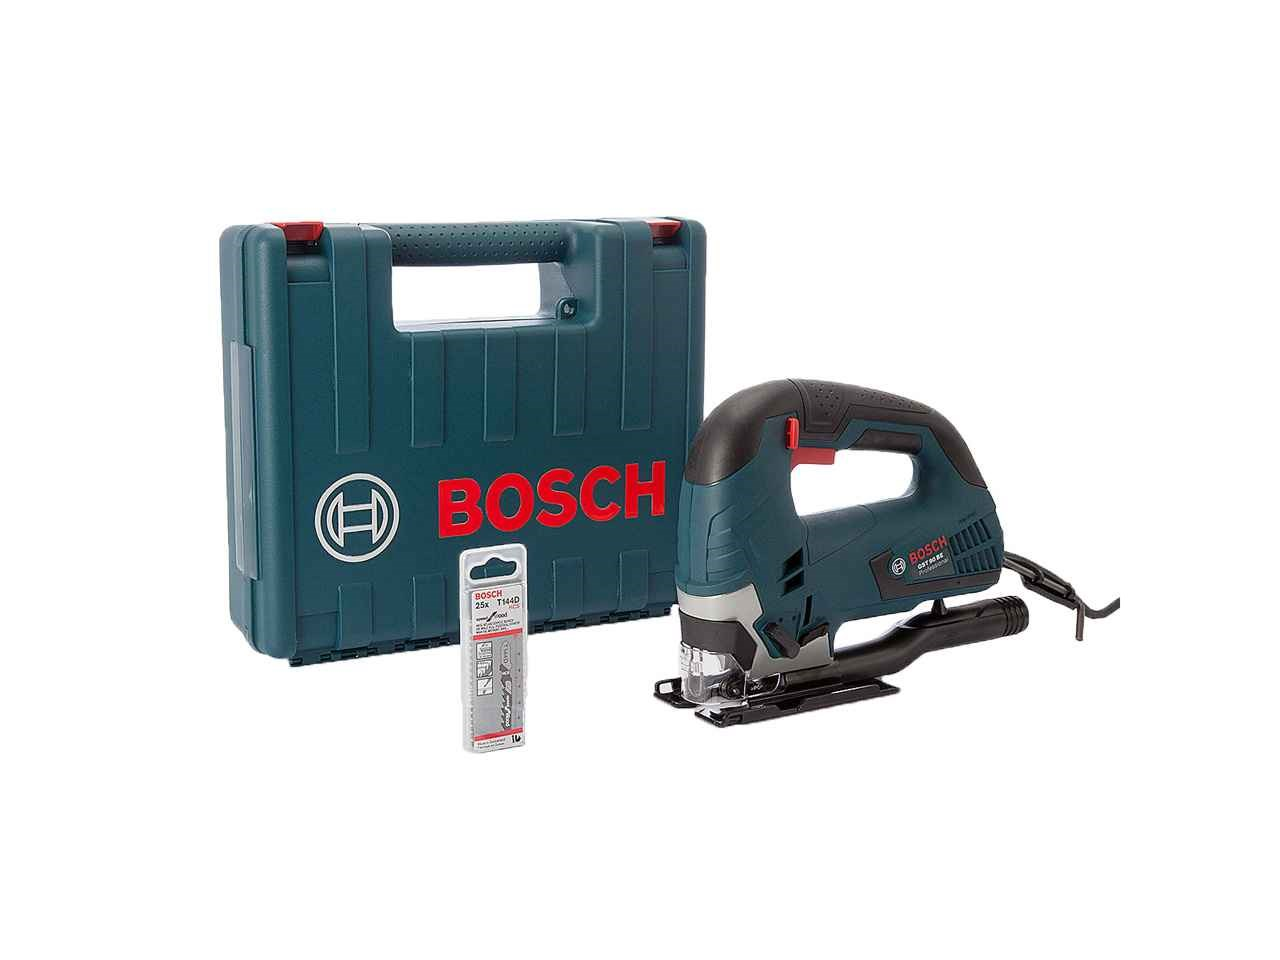 Bosch gst 90 be 1bl 230v 650w bow handle jigsaw with 25 x blades greentooth Choice Image